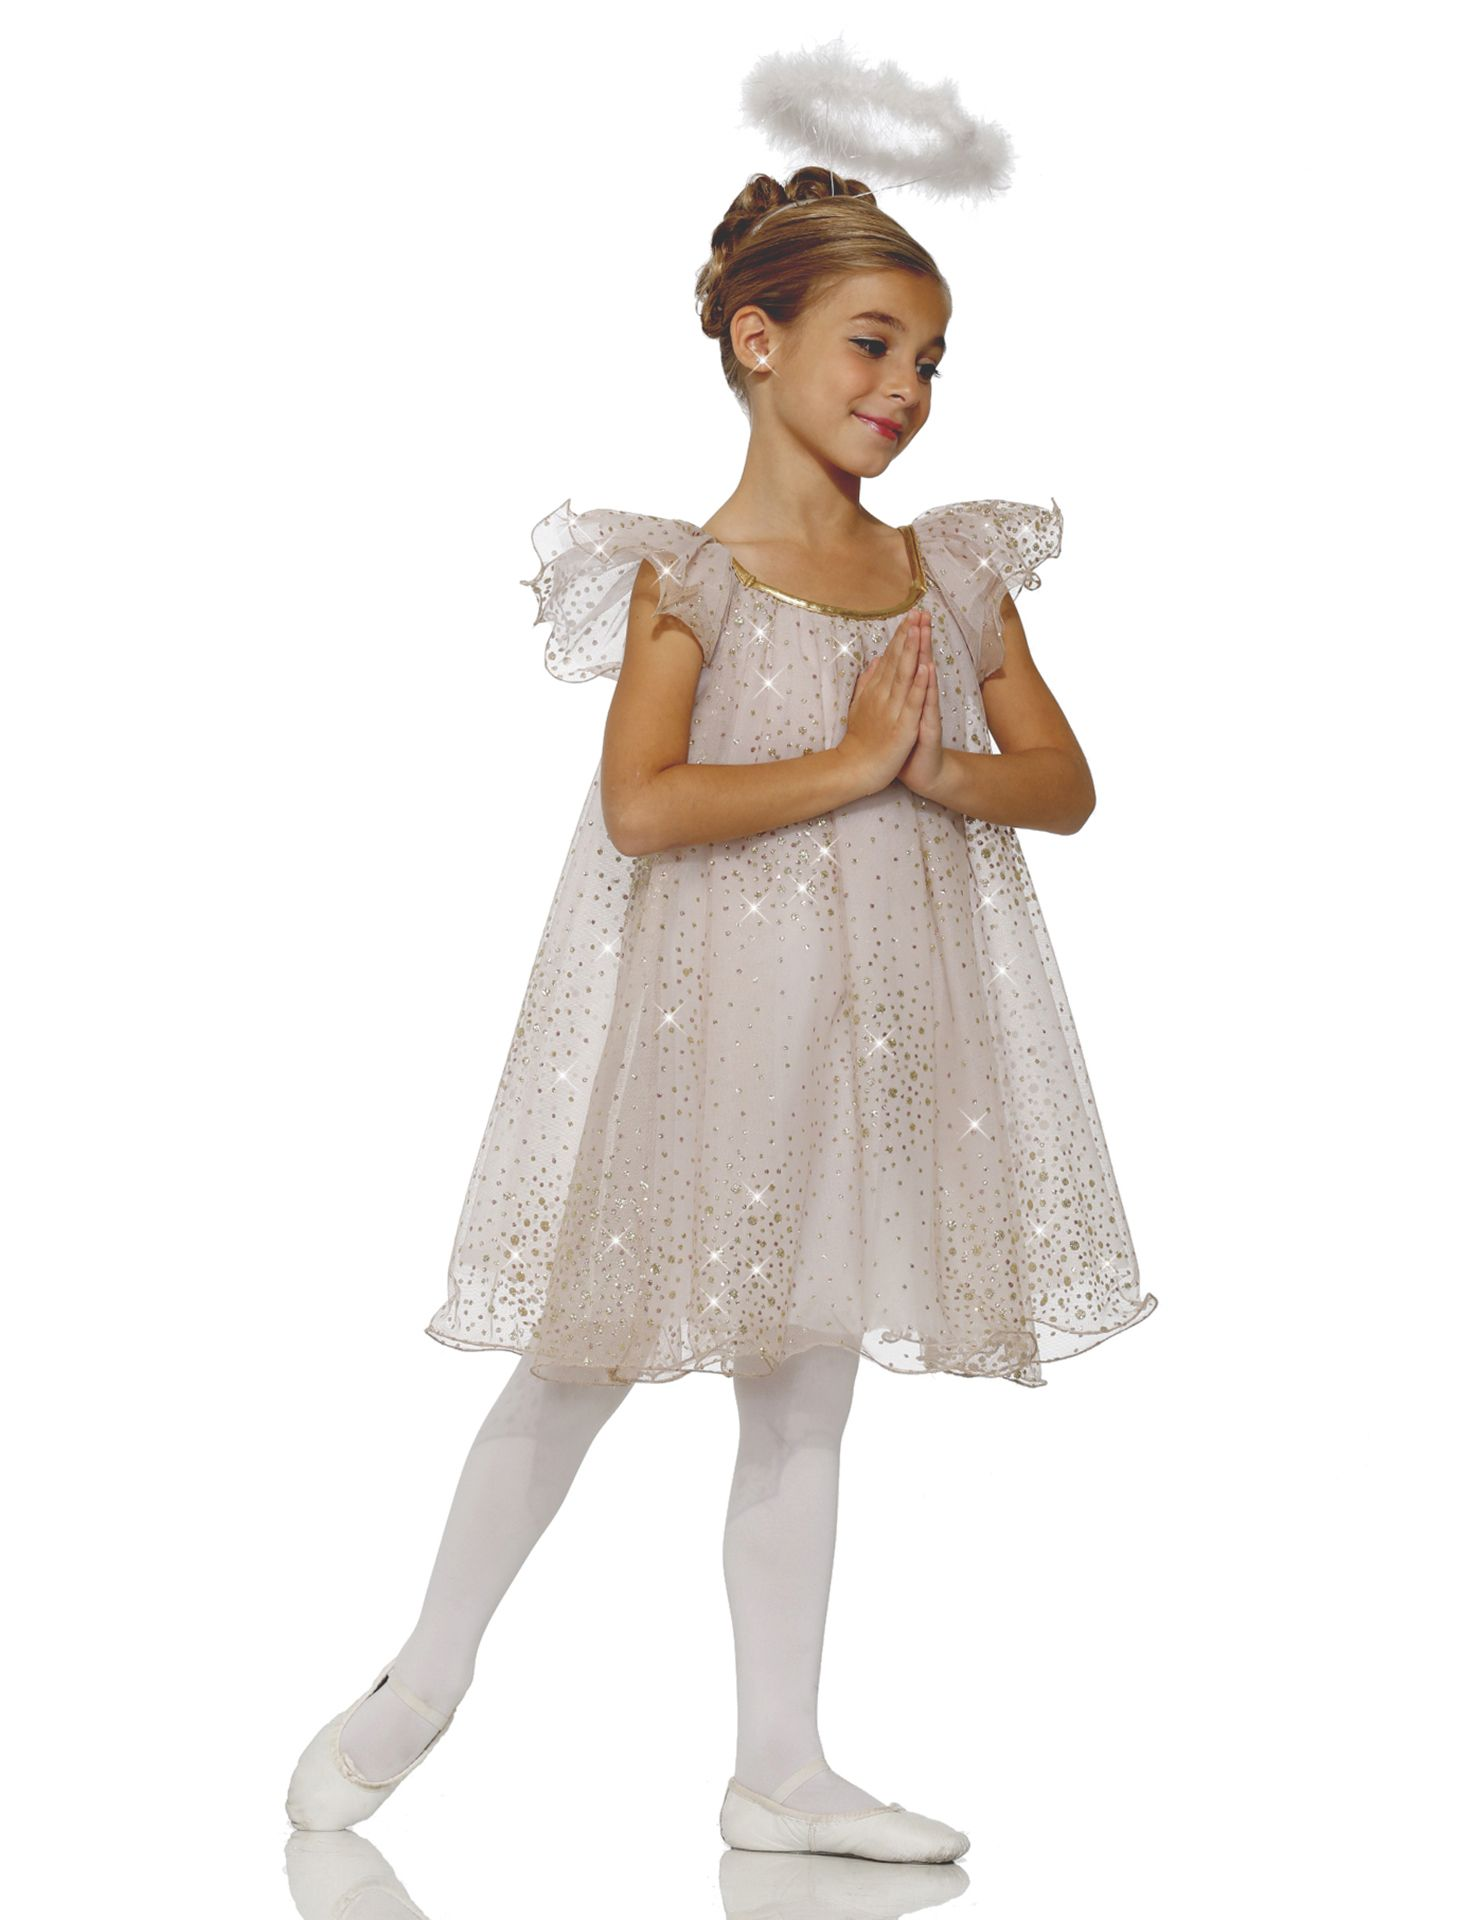 Divine Angel Art Stone 27631 Dance Costumes Pinterest Costume